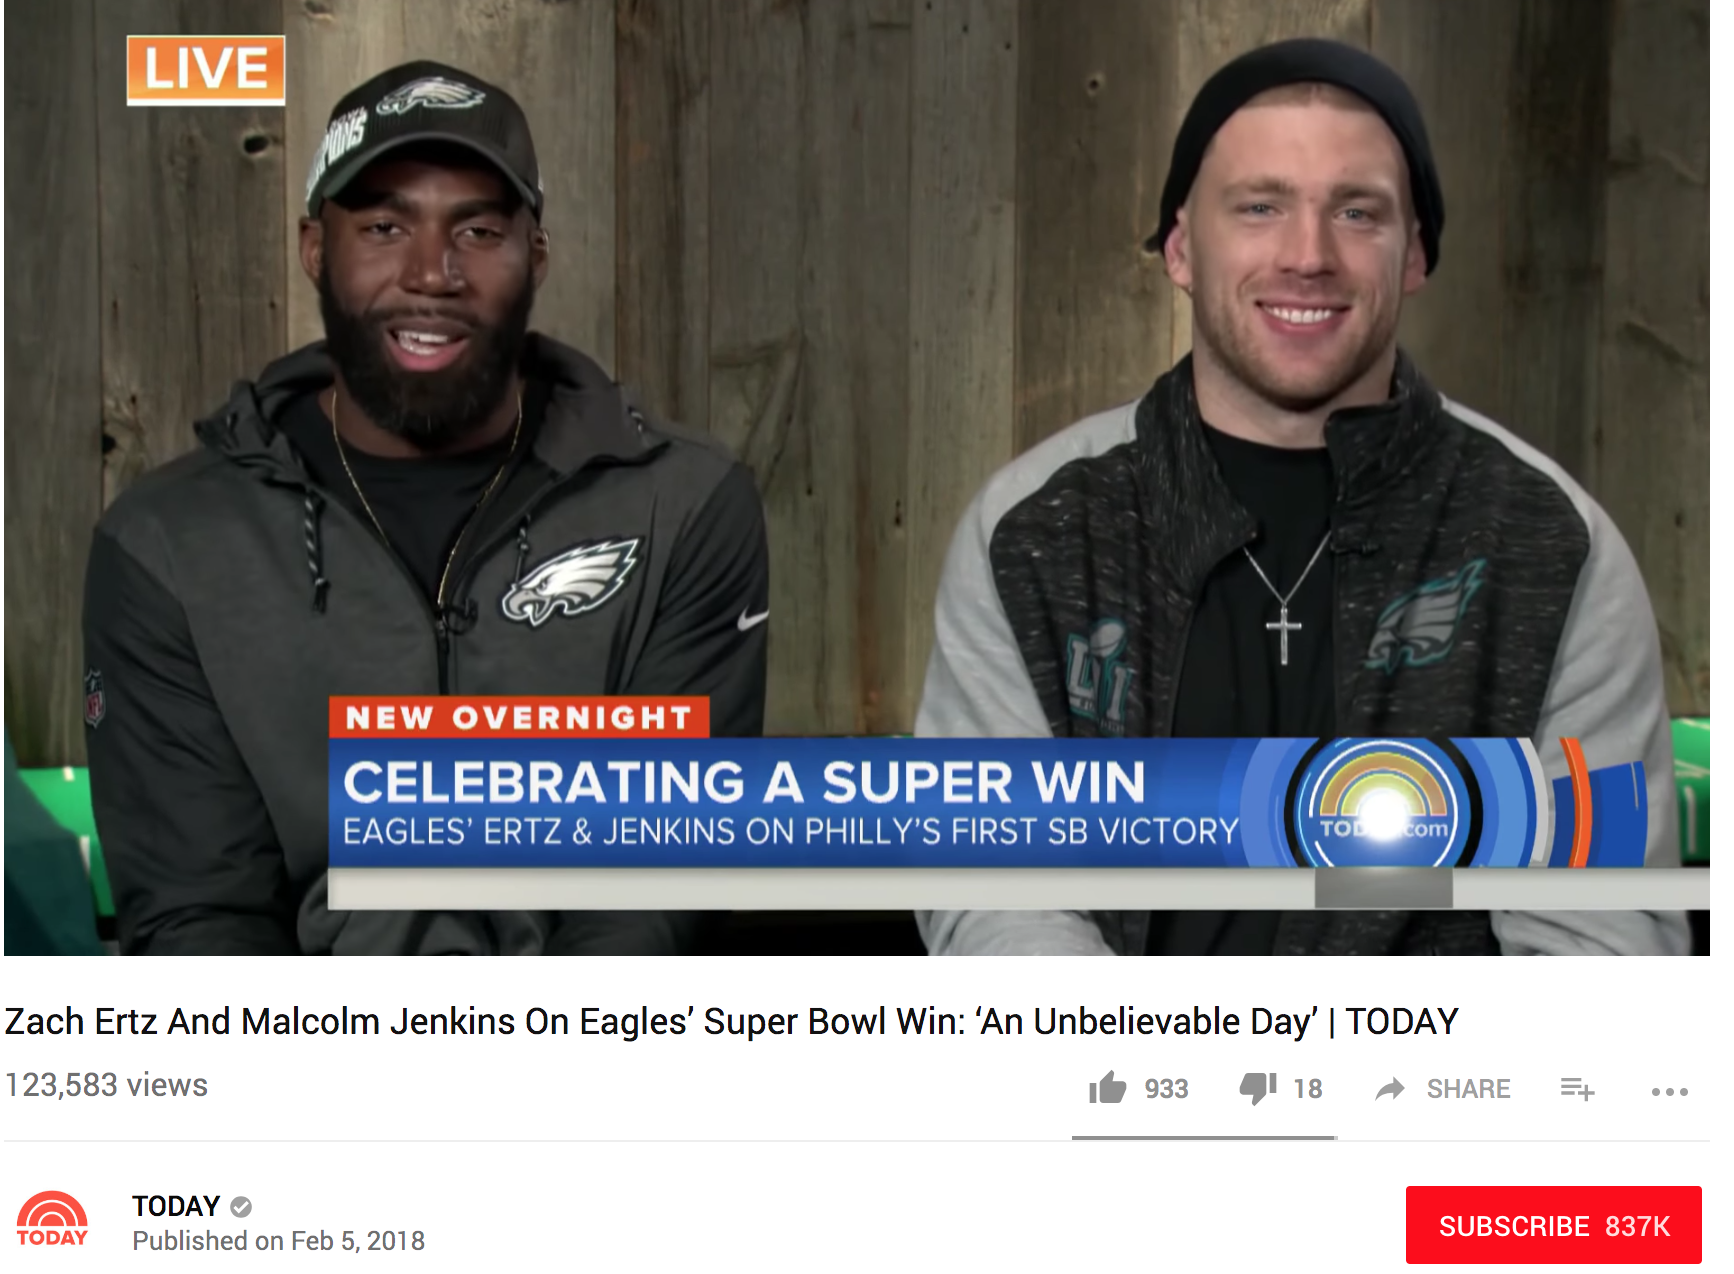 "TODAY Show -  On the morning after their team's upset victory over the New England Patriots in Super Bowl LII, Philadelphia Eagles safety Malcolm Jenkins and tight end Zach Ertz join TODAY live. ""We're so excited to bring this trophy back,"" Jenkins says. ""It was an unbelievable day,"" Ertz adds, calling the game ""a full 60-minute fight."""